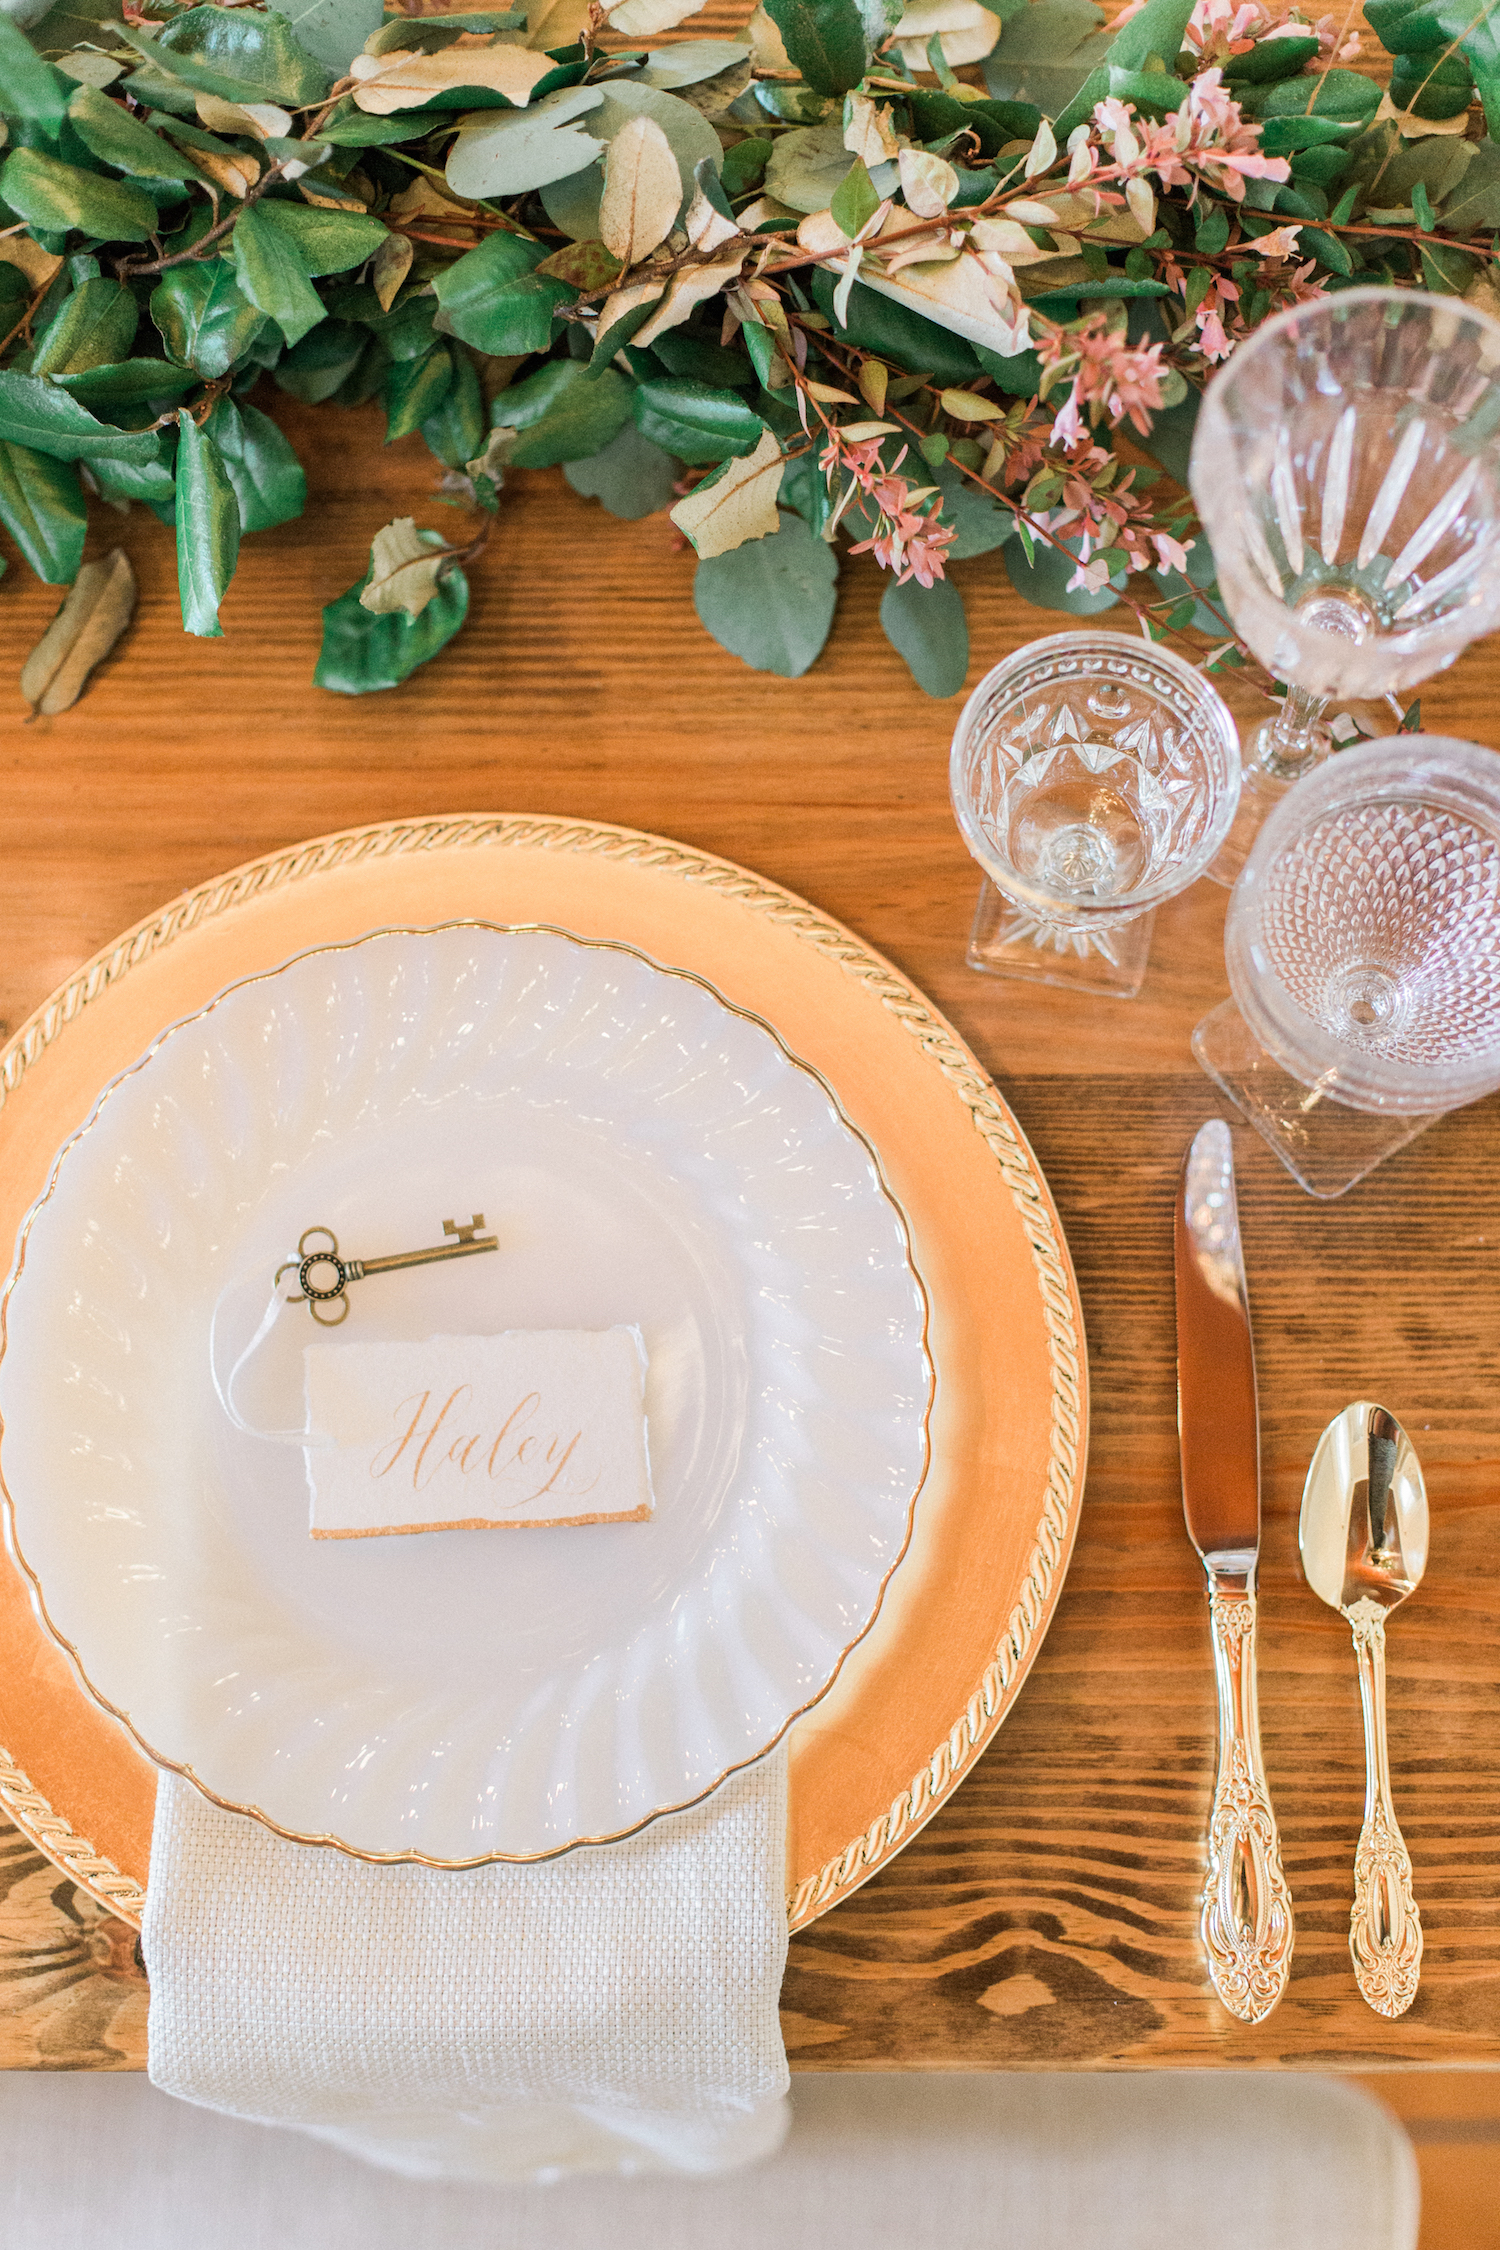 Key place cards and gold plates and silverware for wedding table setting.